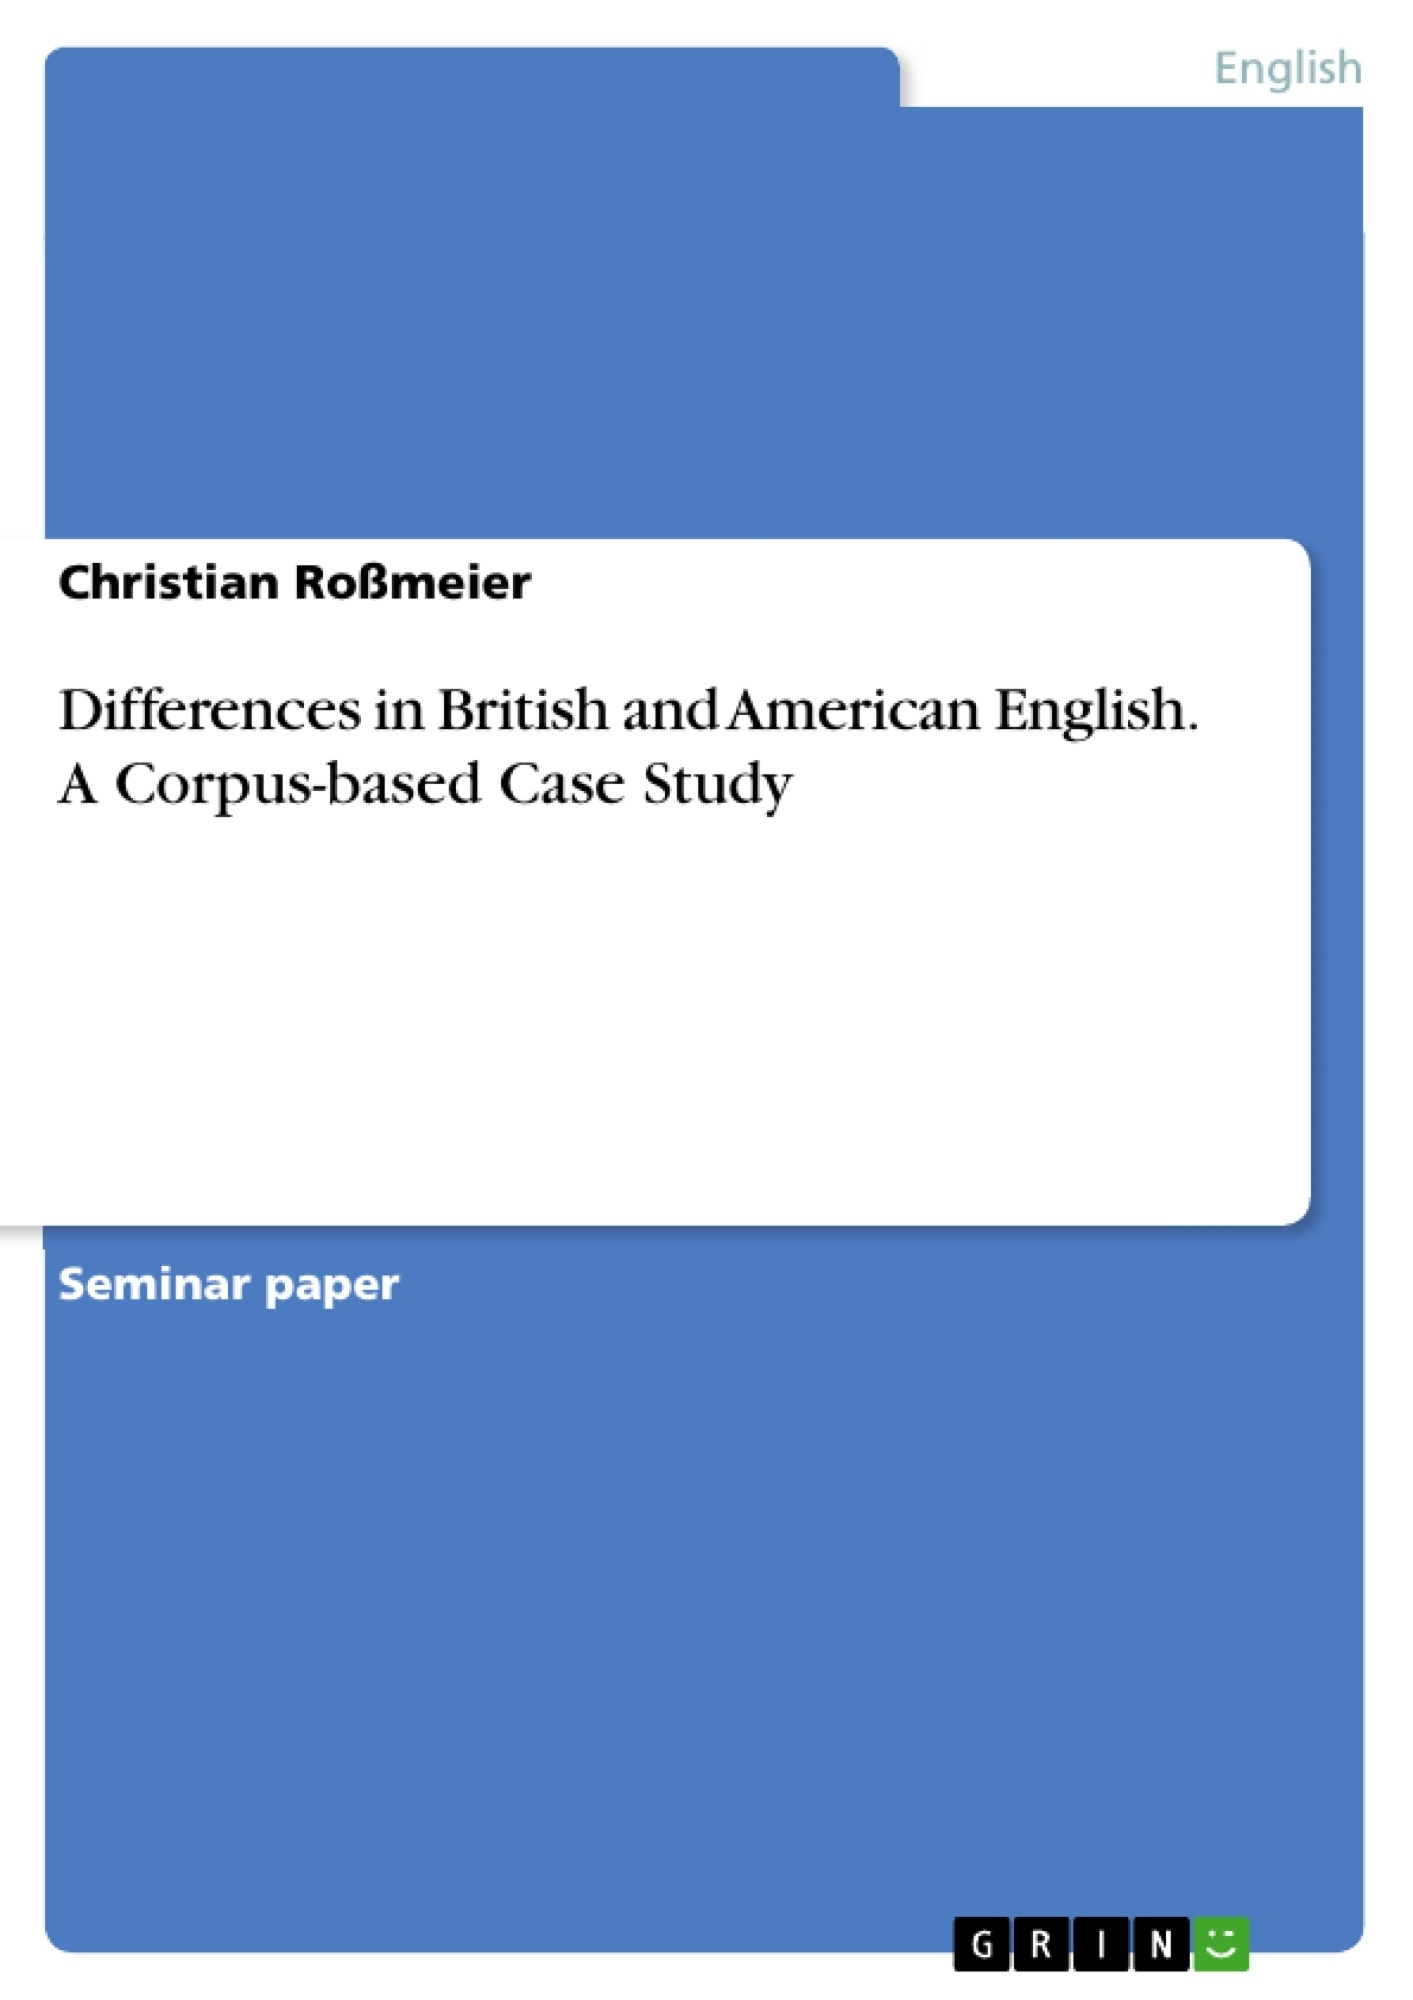 Title: Differences in British and American English. A Corpus-based Case Study